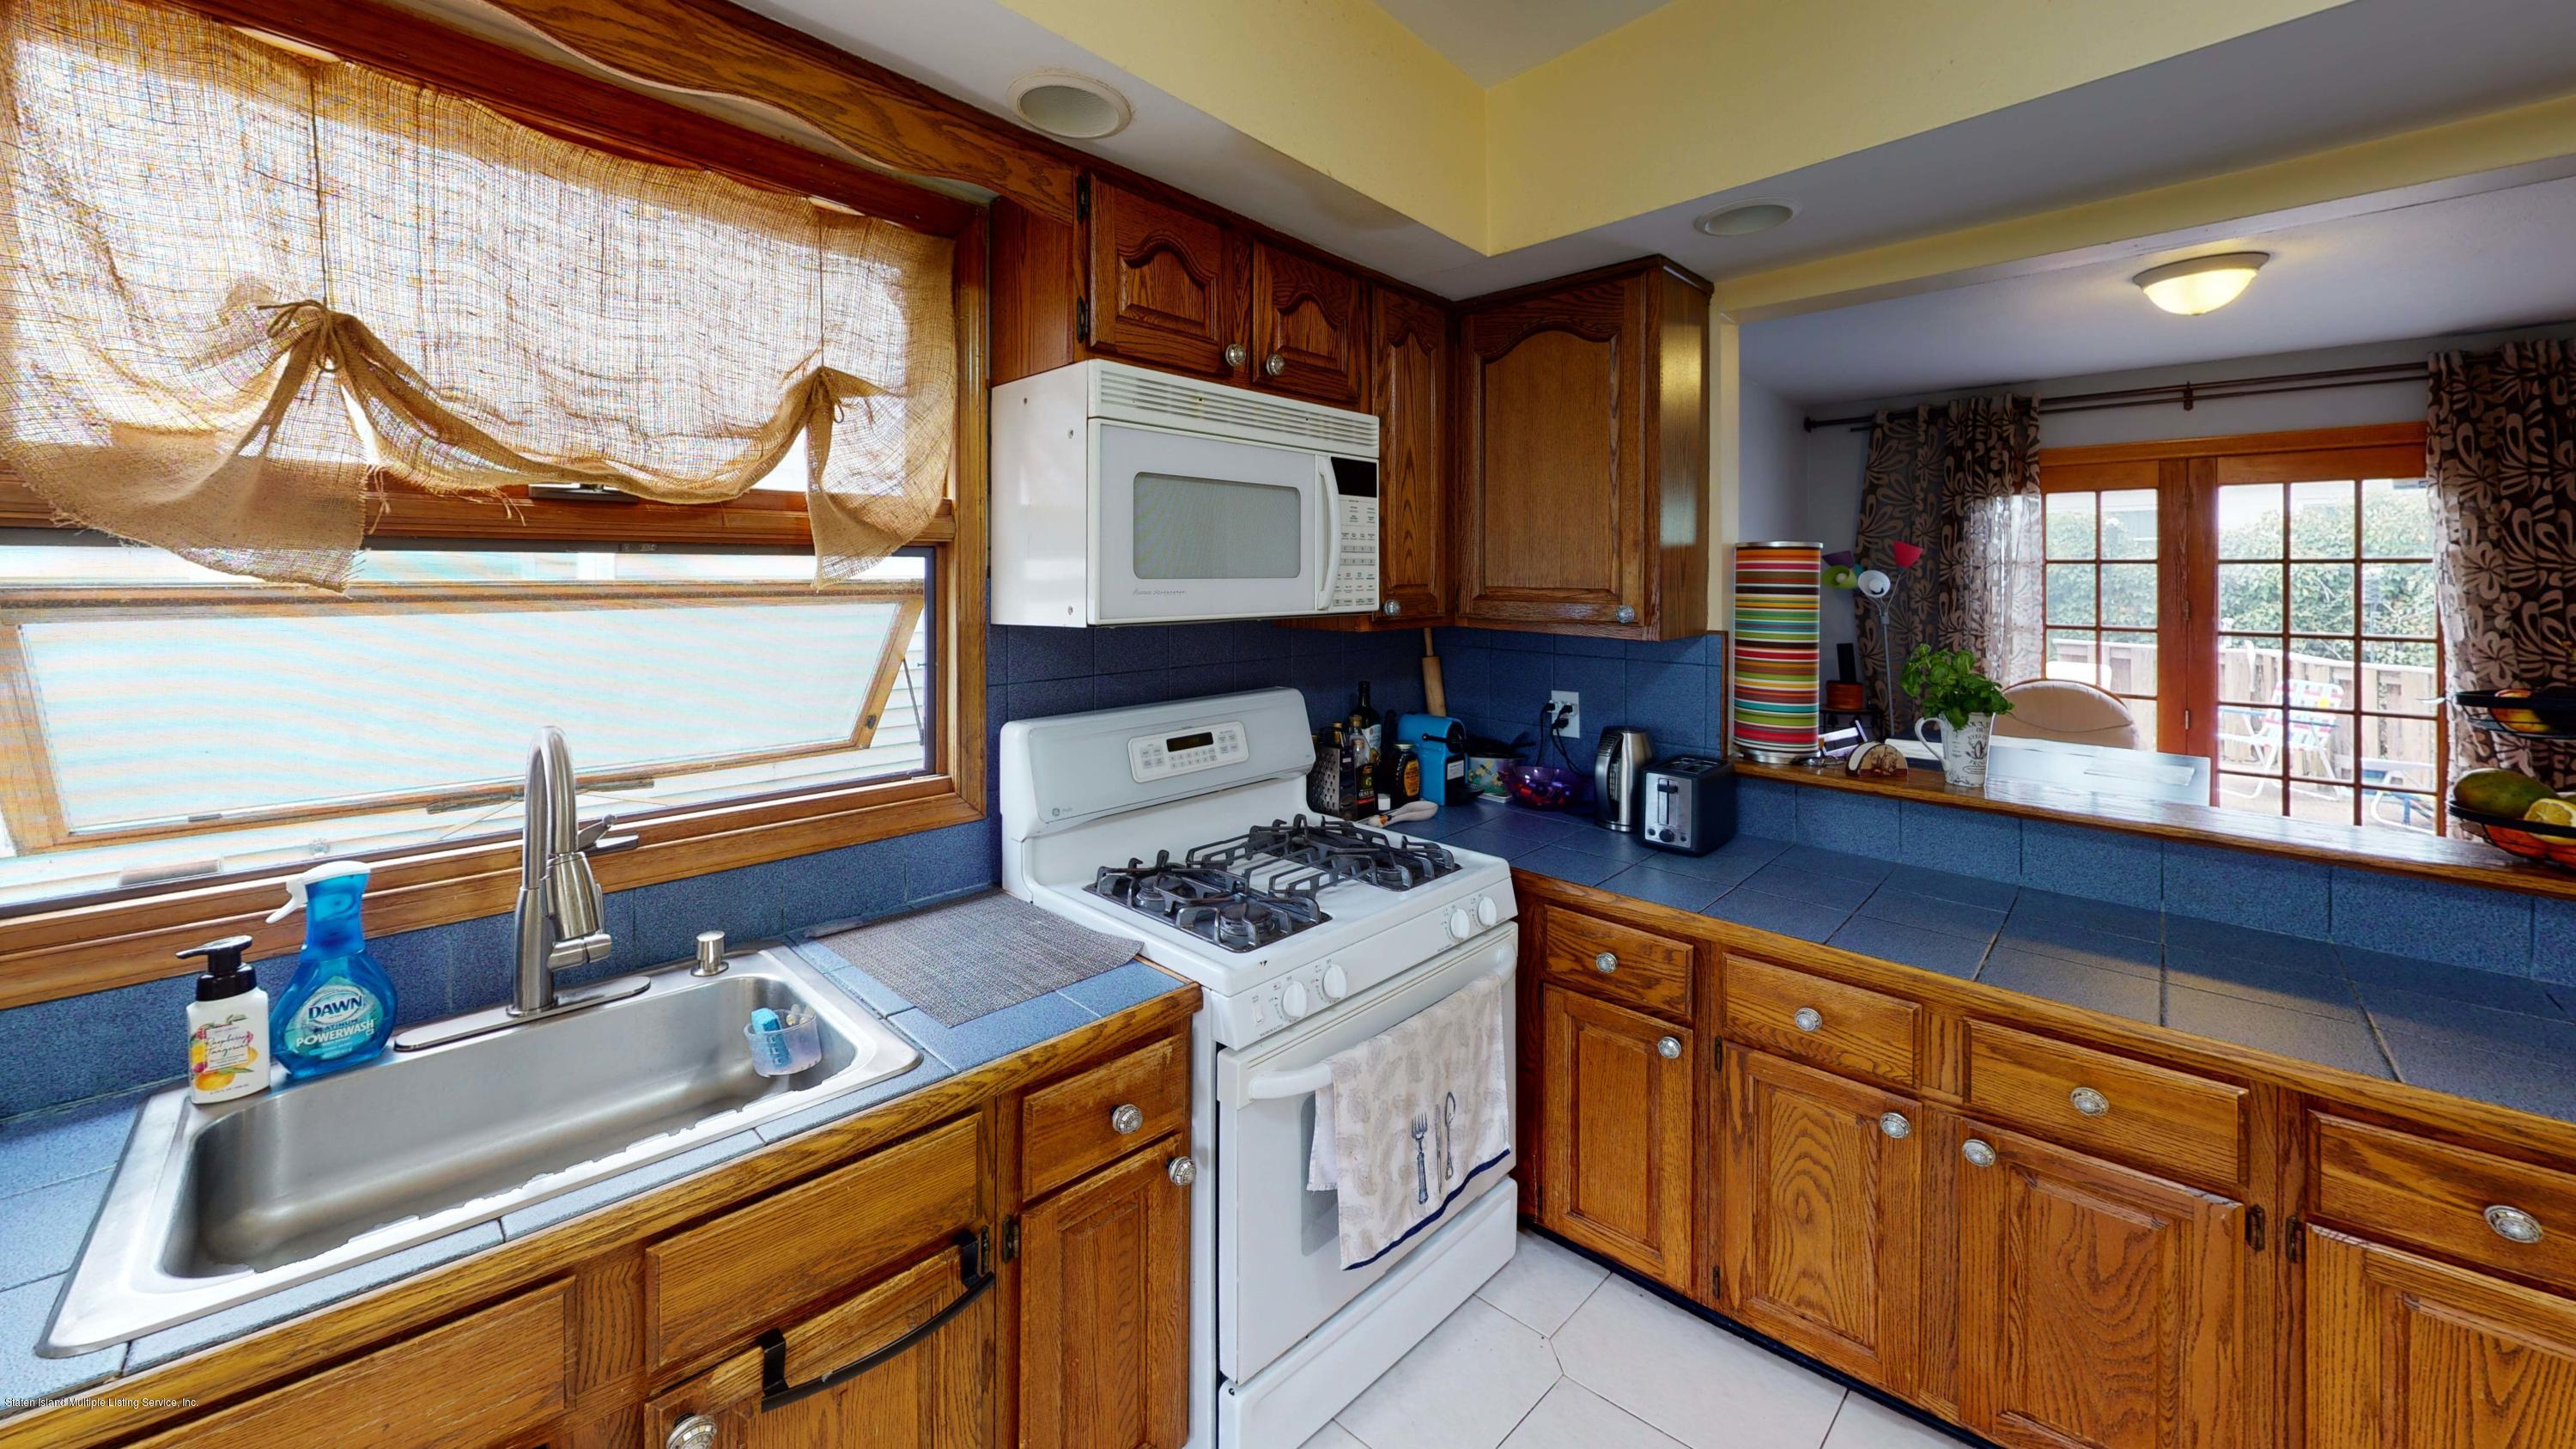 Single Family - Detached 129 Lucille Avenue  Staten Island, NY 10309, MLS-1135888-4